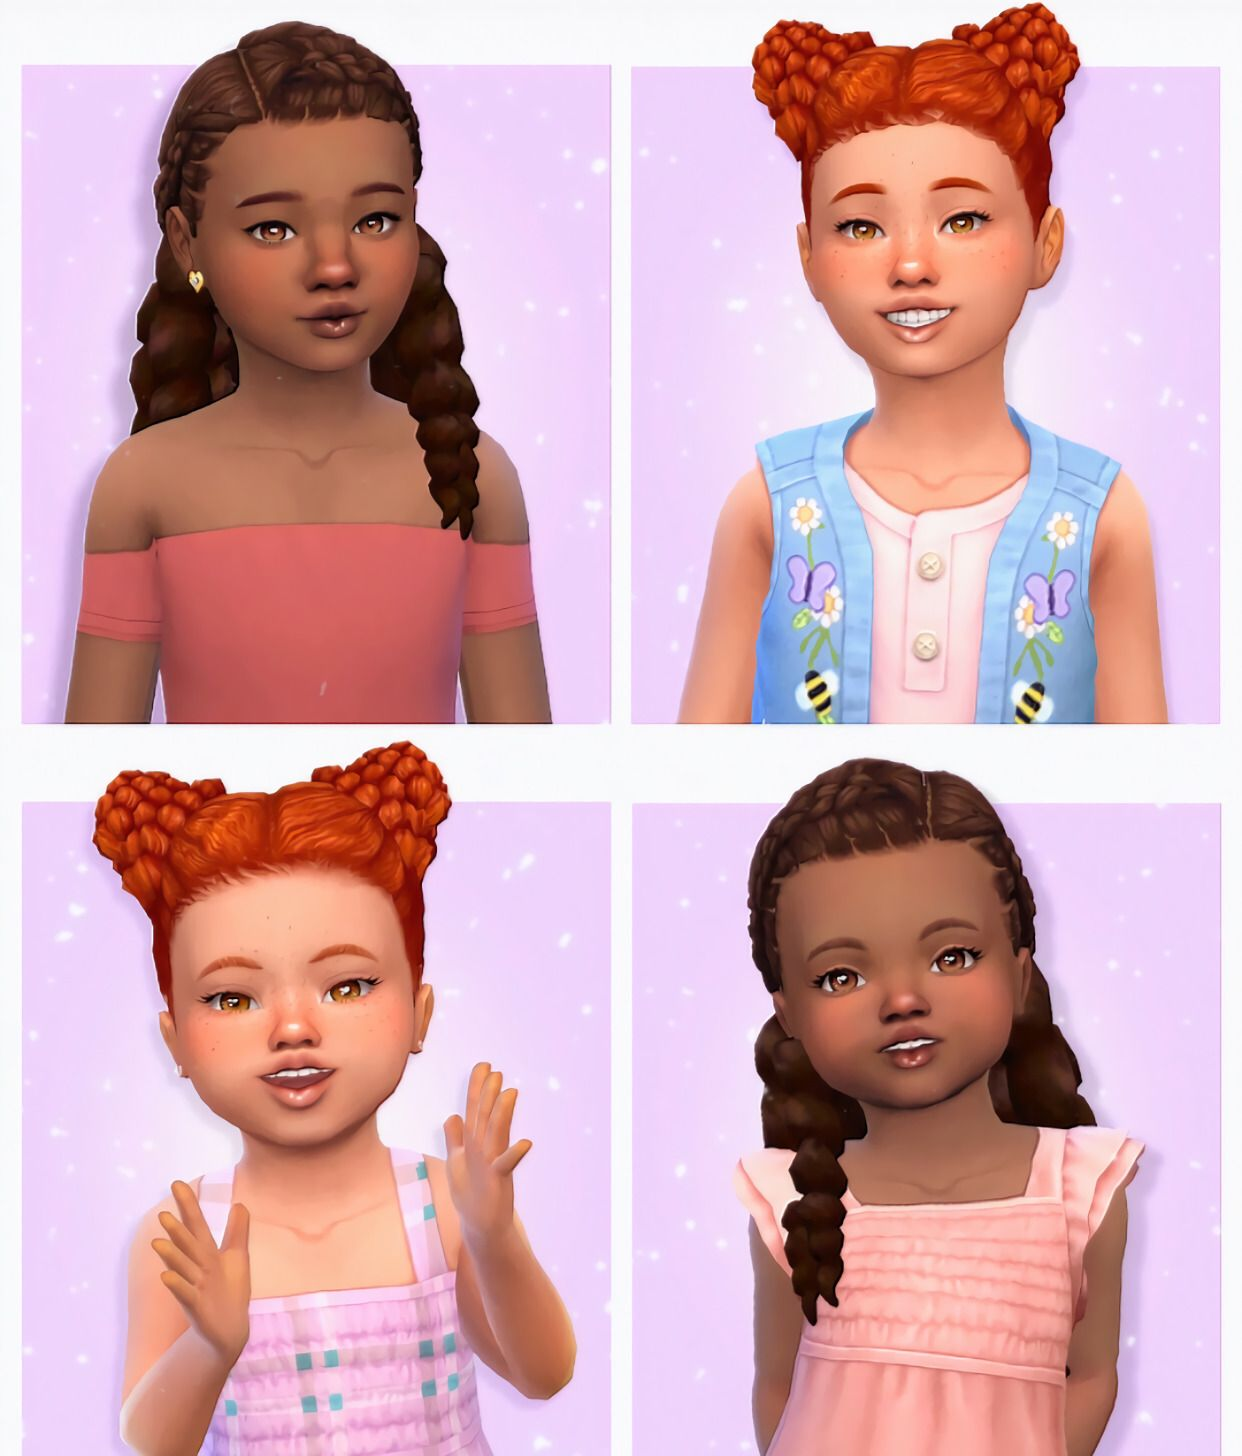 Wifemomsimmer Peachibloom Playing Sims 4 Toddler Hair Sims 4 Toddler Cc Sims 4 Sims 4 Toddler